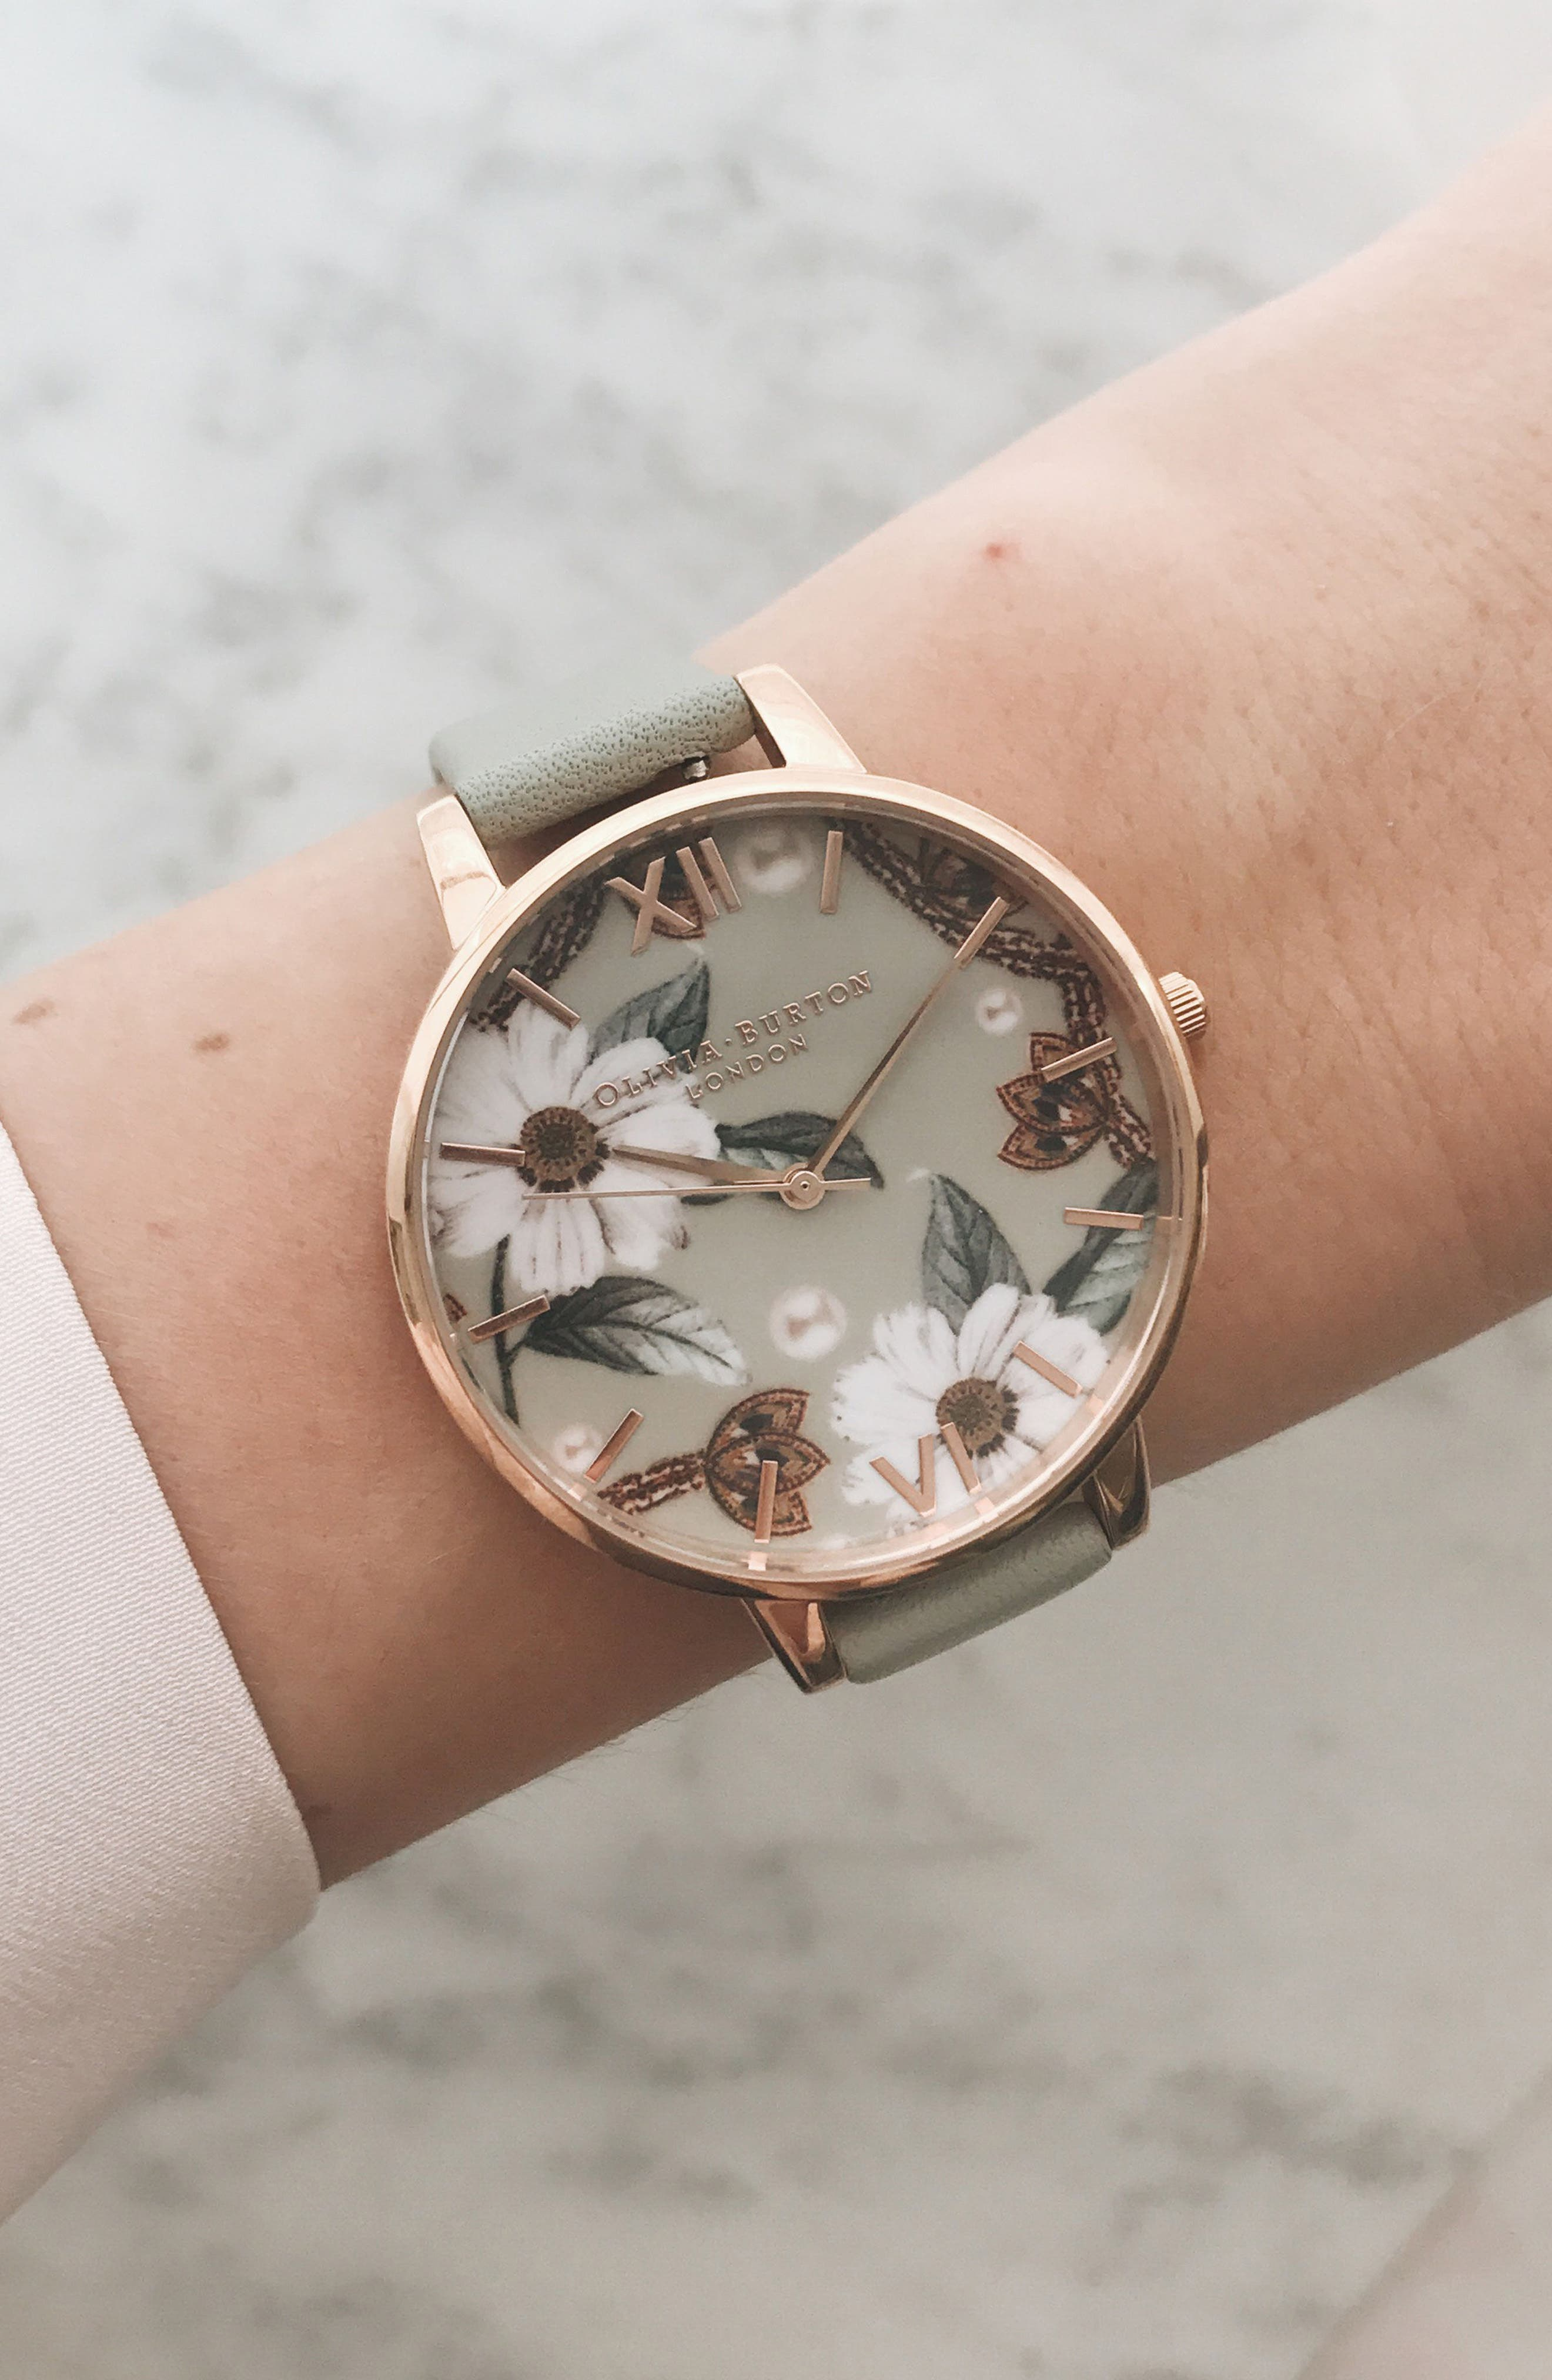 OLIVIA BURTON, Bejewelled Leather Strap Watch, 38mm, Alternate thumbnail 5, color, GREY/ FLORAL/ ROSE GOLD